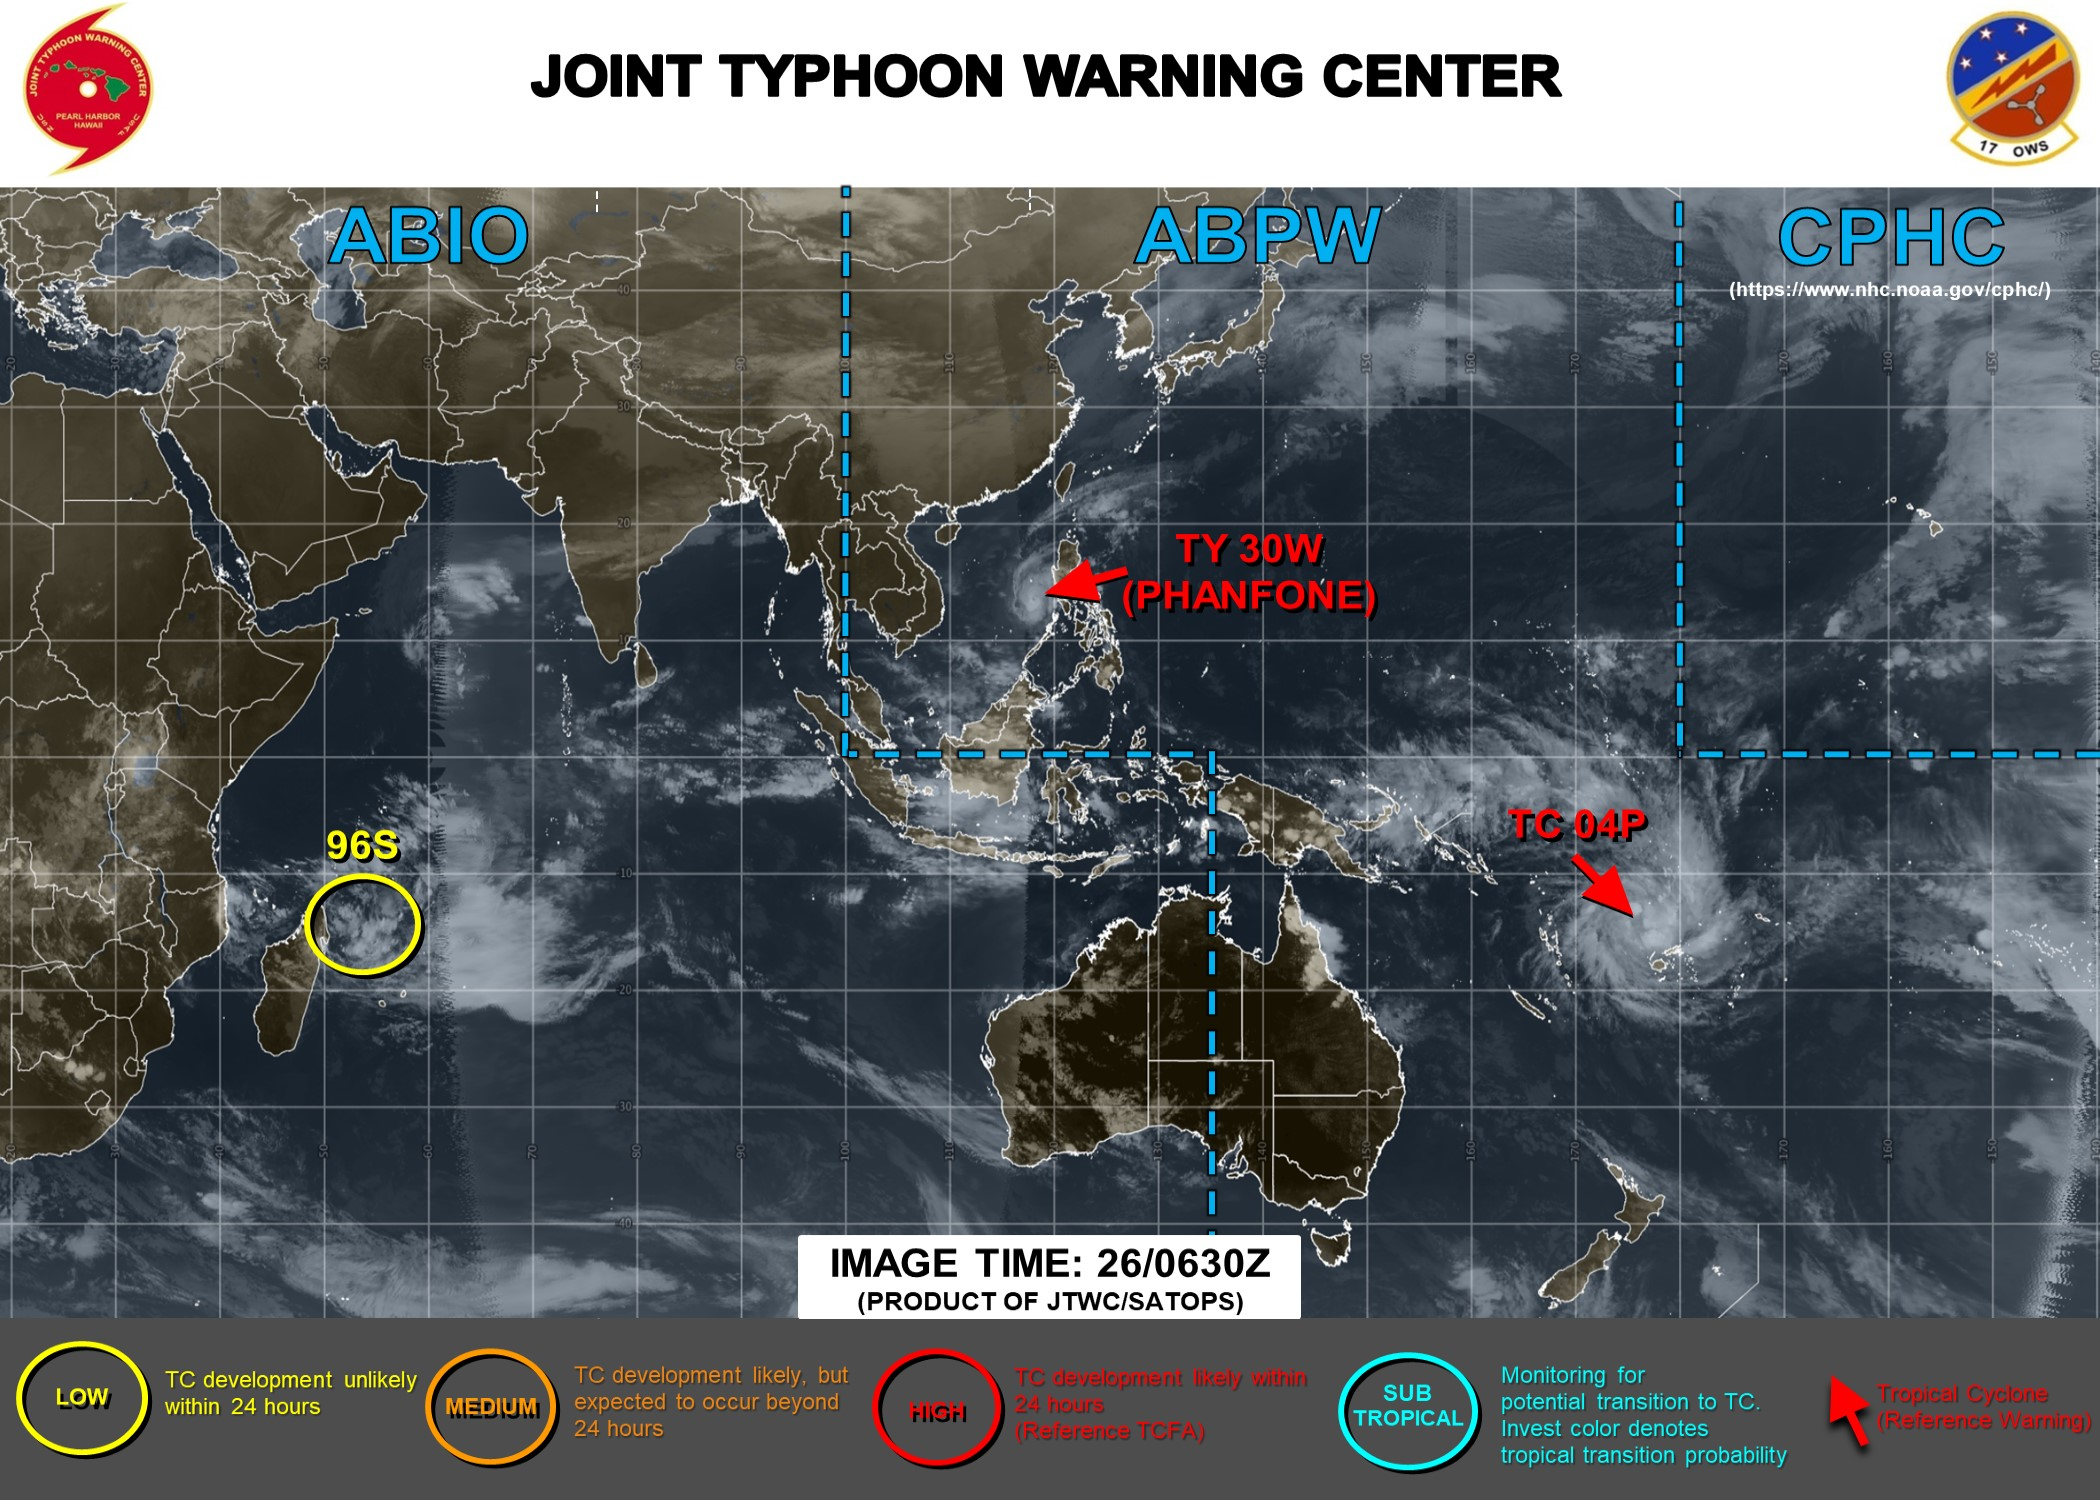 Philippines: Phanfone moving away and weakening. Fiji: 04P approaching and strengthening